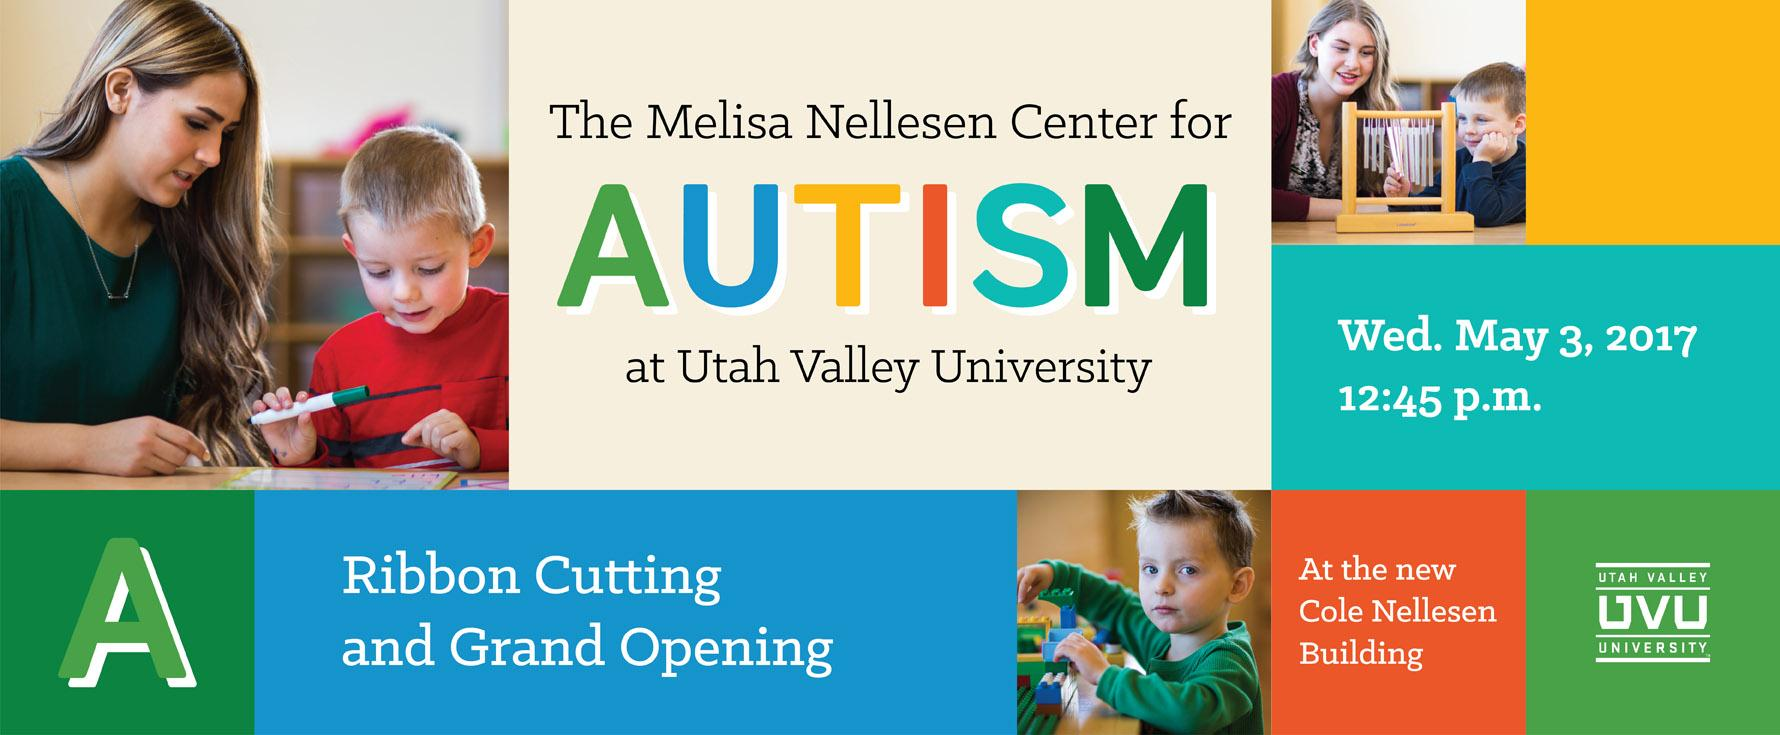 The Melisa Nellesen Center for Autism at UVU Ribbon Cutting